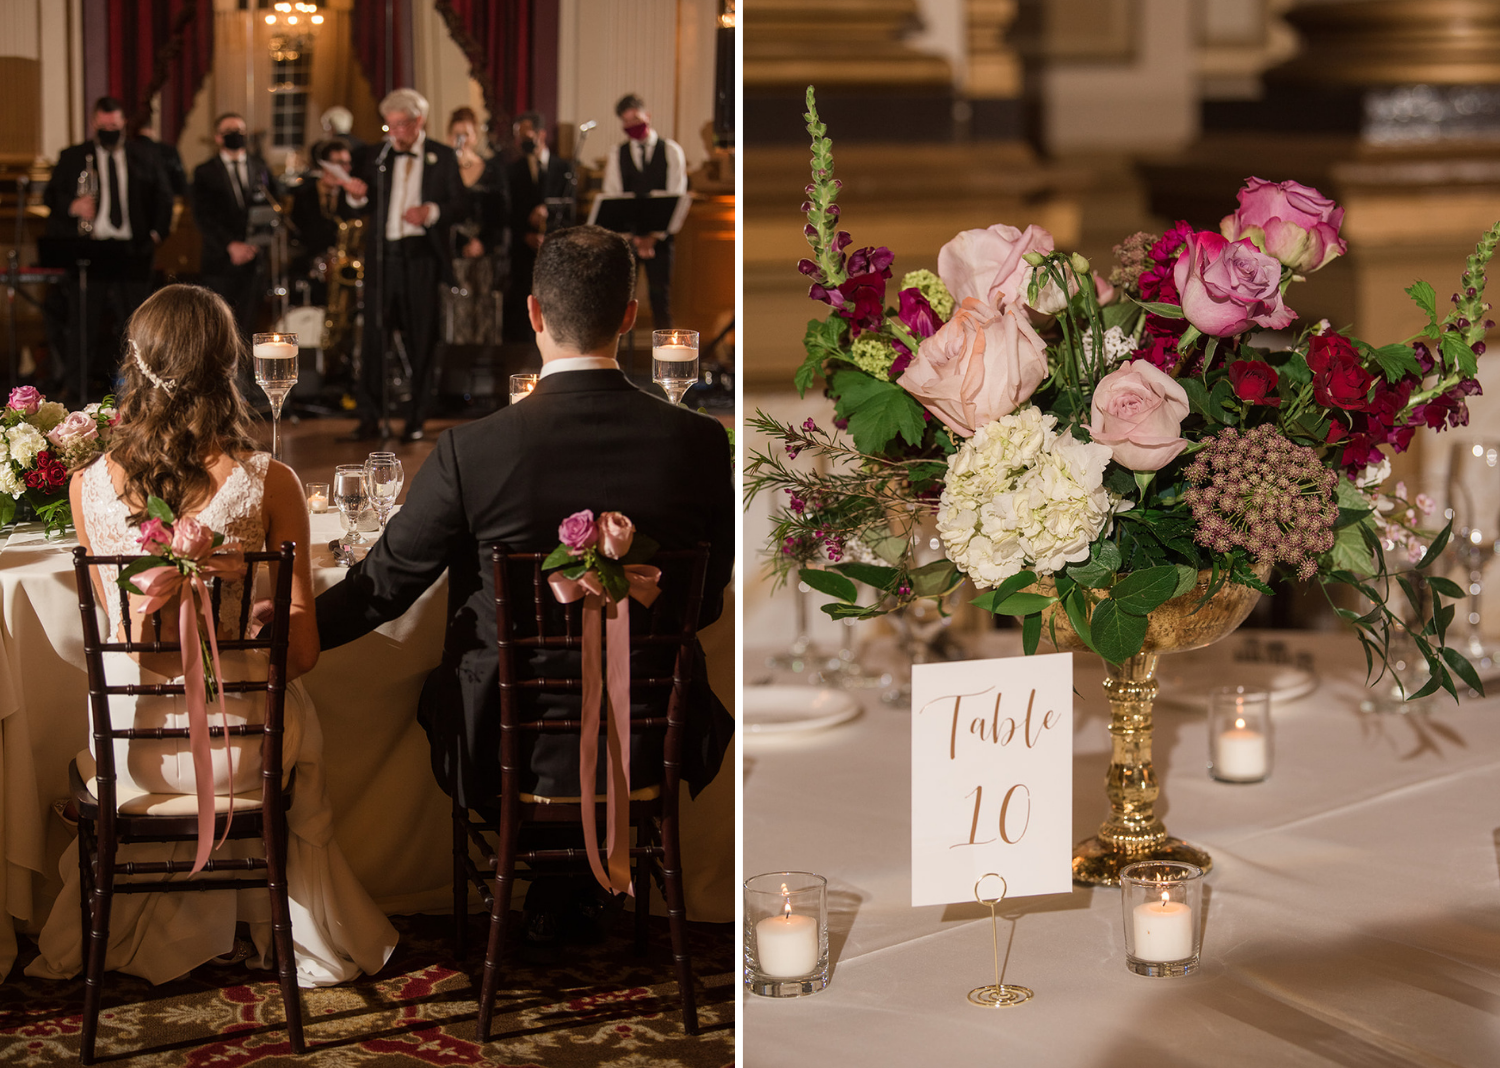 bride and groom at their wedding reception along with wedding reception table decorations